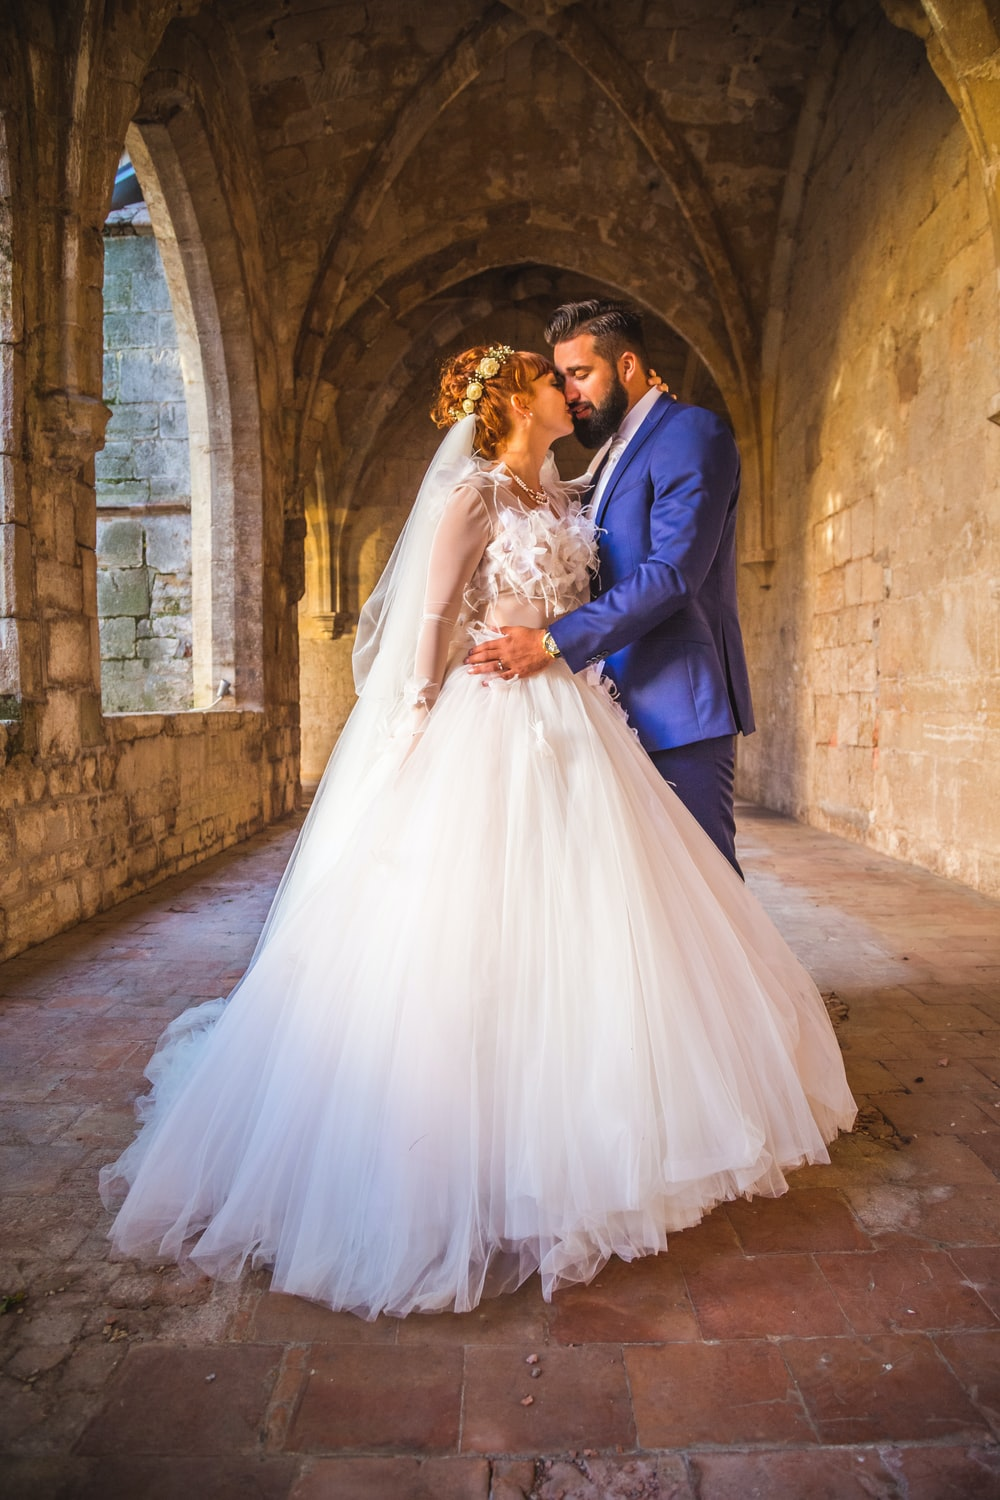 man in blue suit and woman in white wedding dress